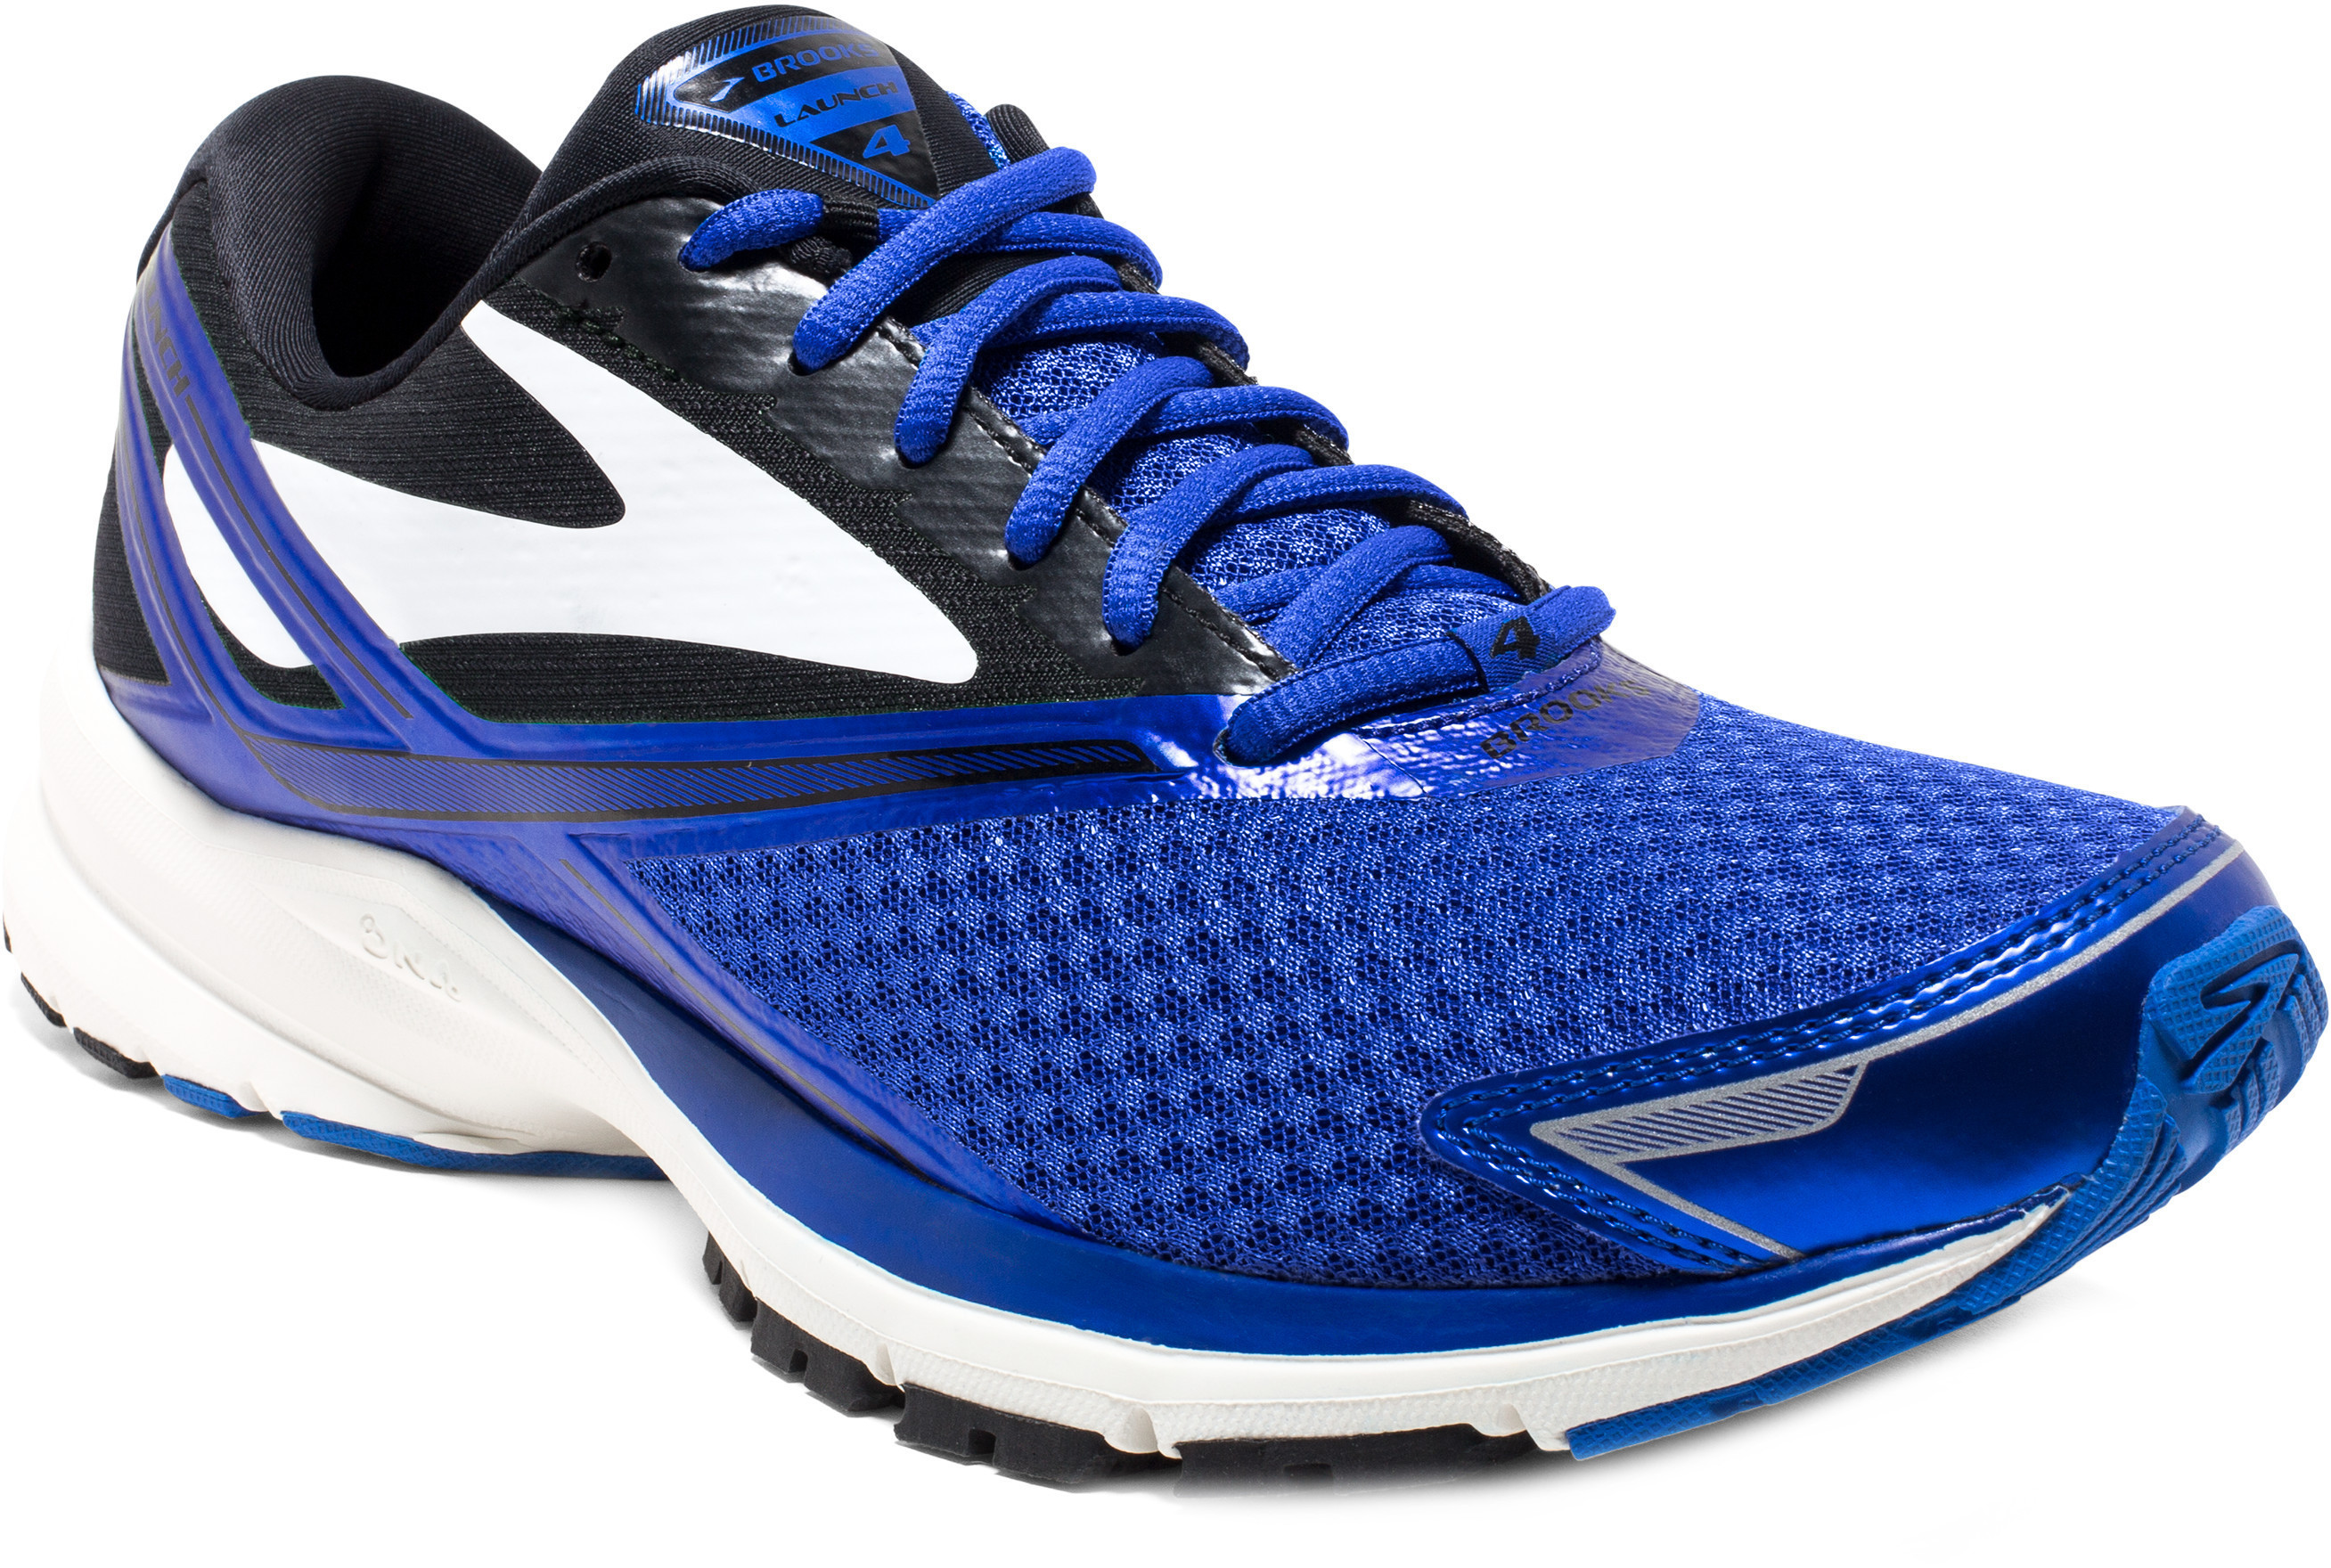 f07ee11aed1f Brooks Launch 4 Road Running Shoe - Men s 1102441D486.130